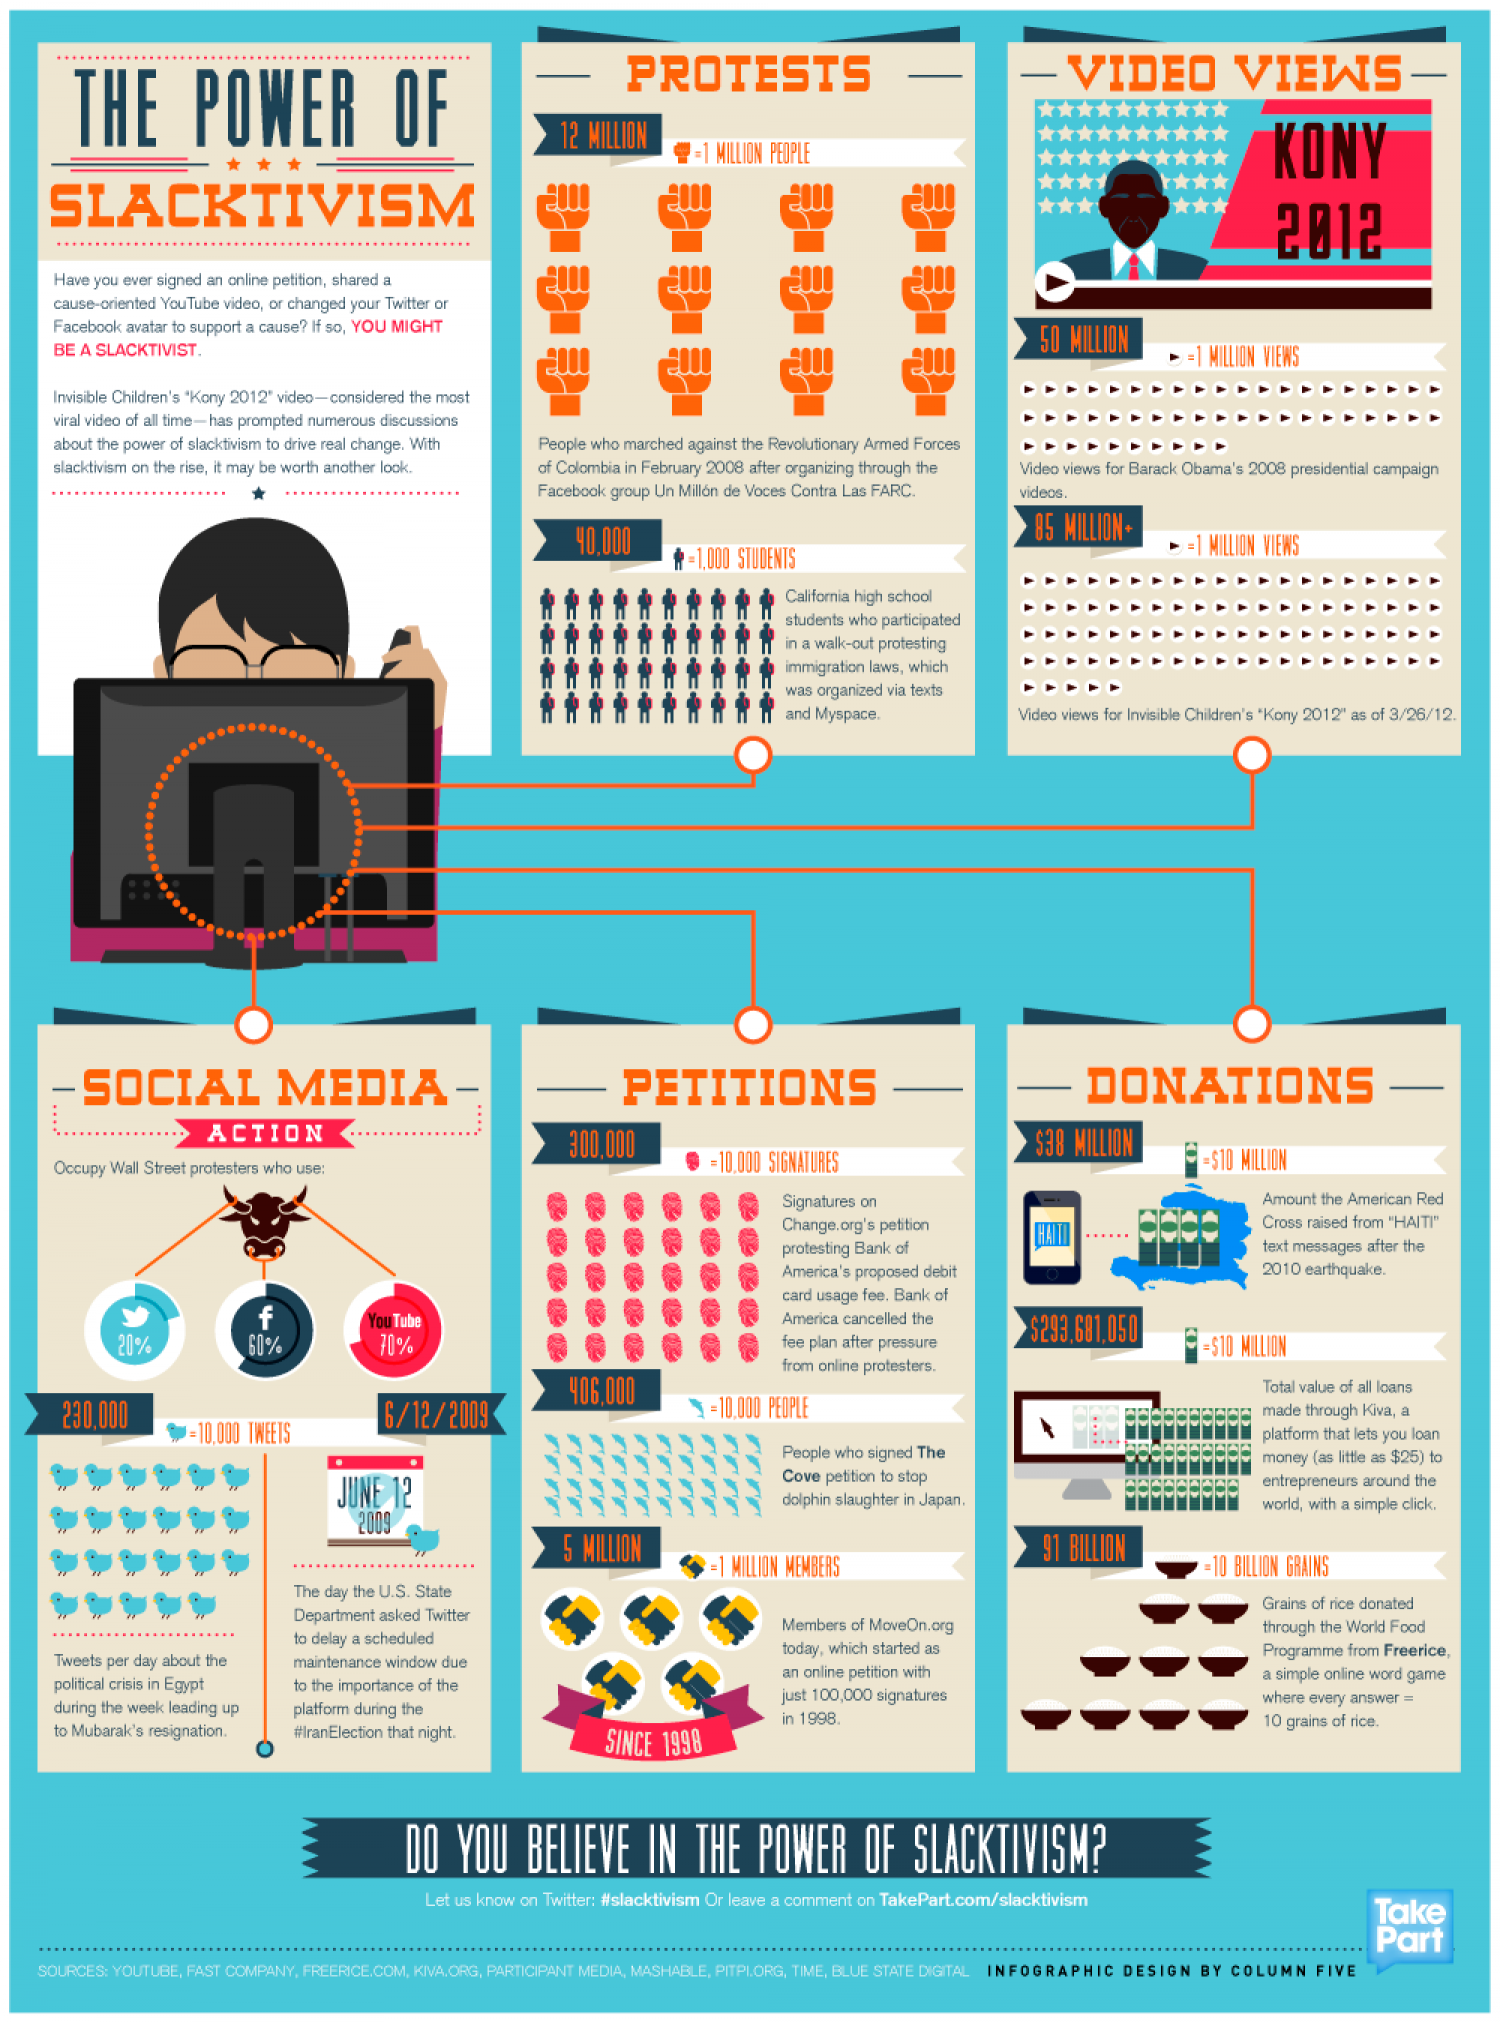 The Power of Slacktivism Infographic